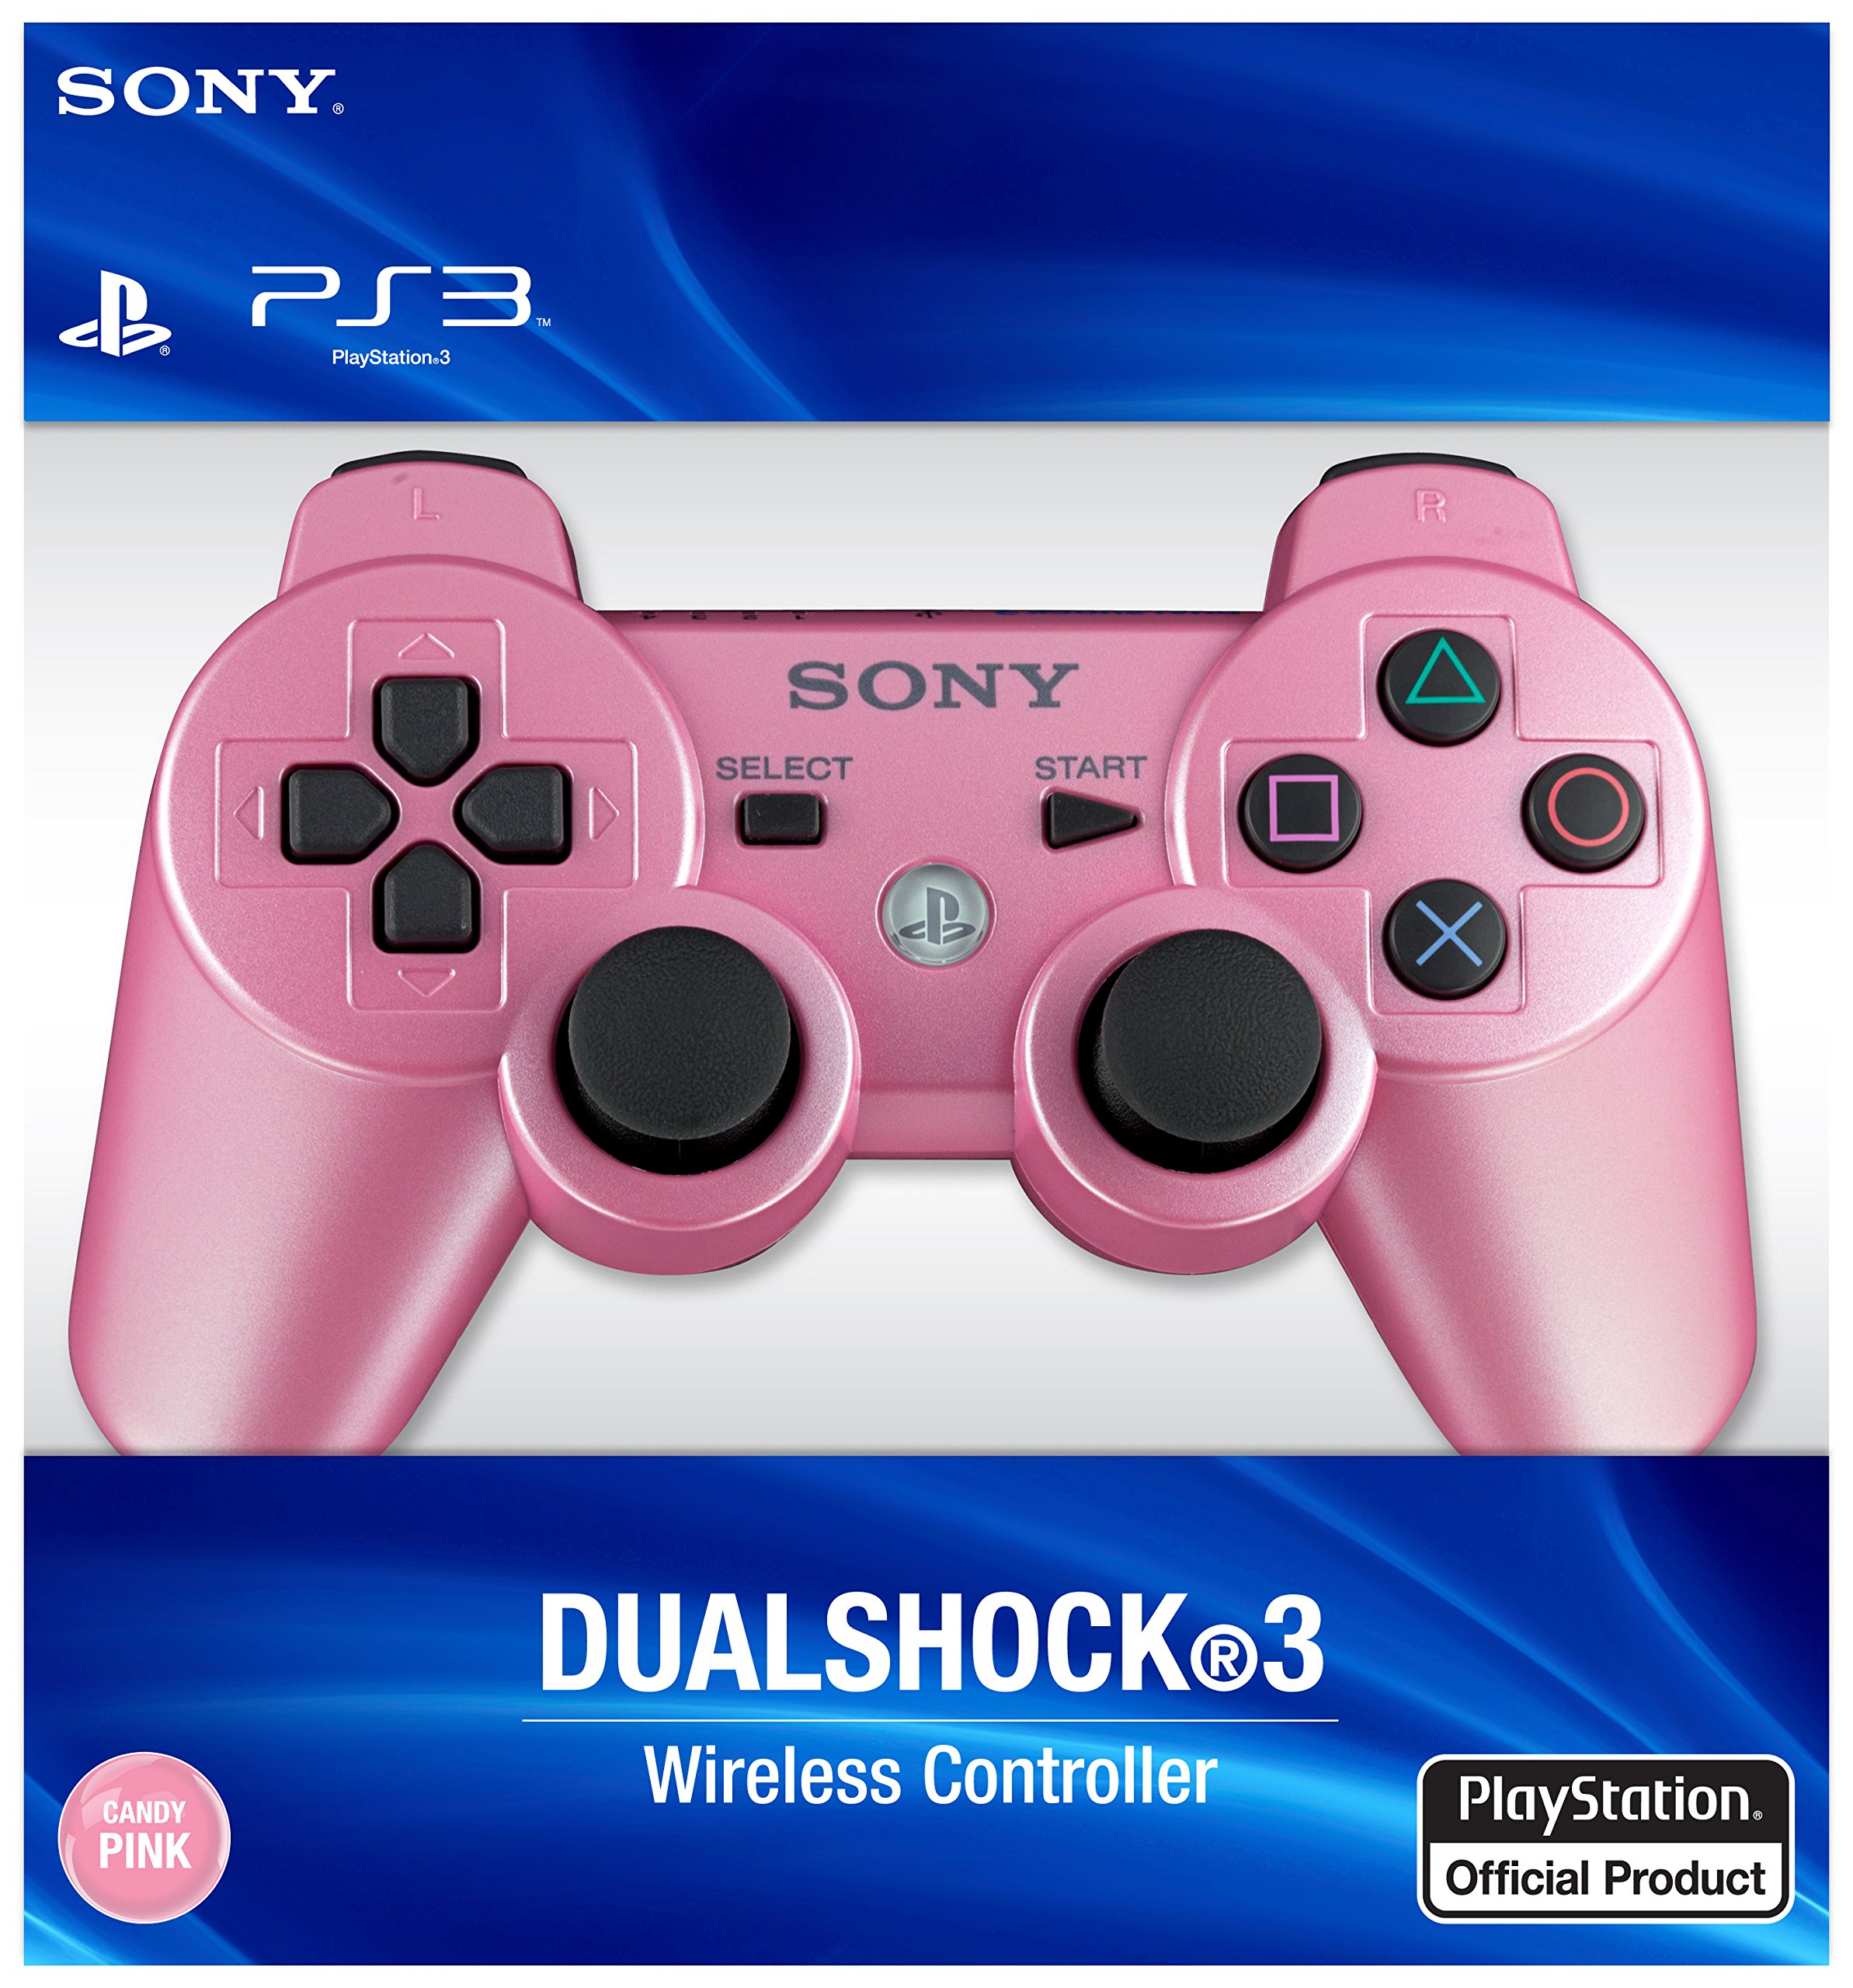 PlayStation 3 Dualshock 3 Wireless Controller (Candy Pink) by Sony